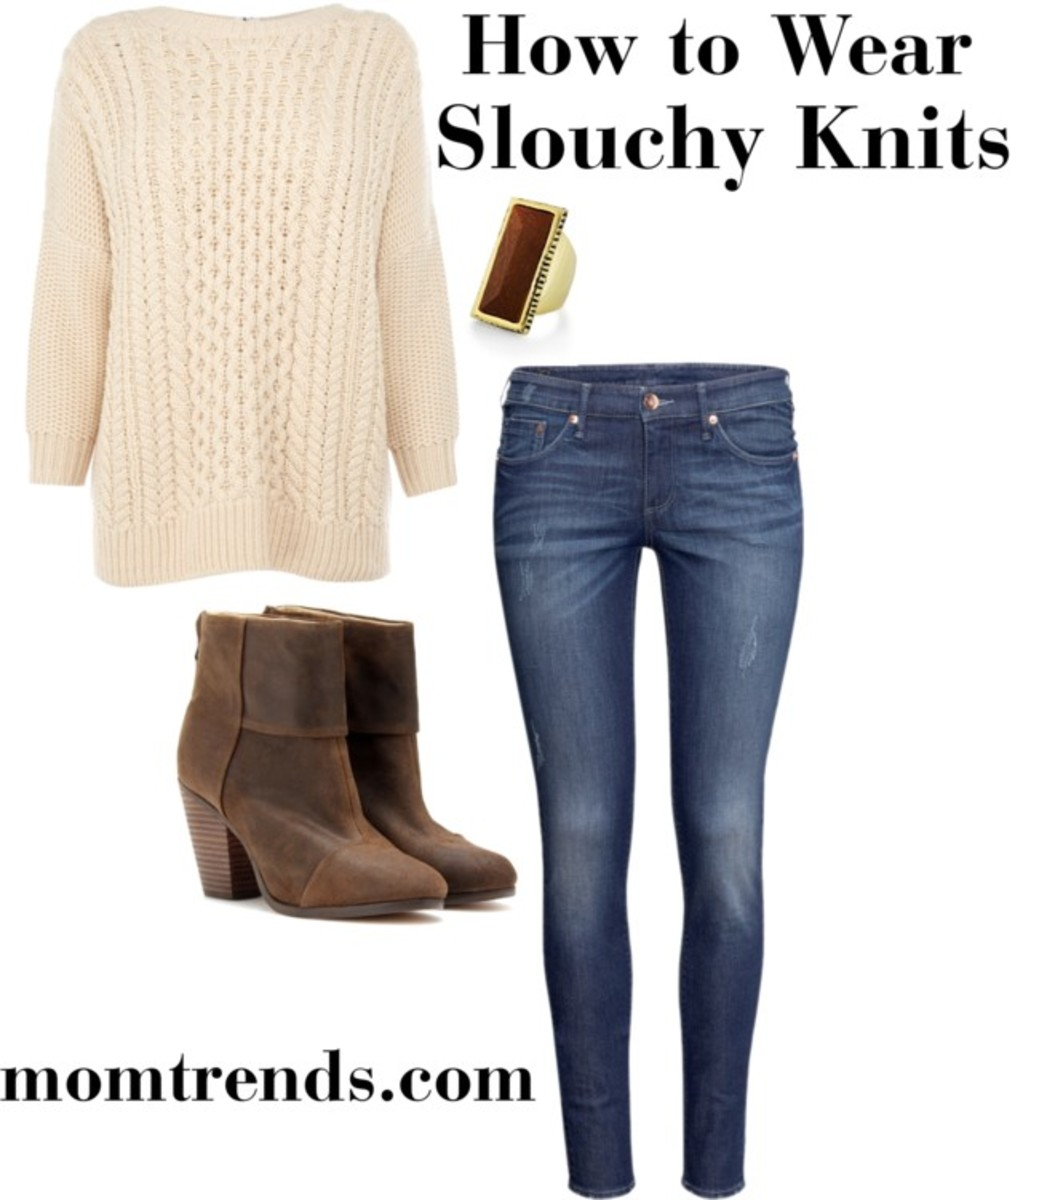 Slouchy Knits and Skinnies